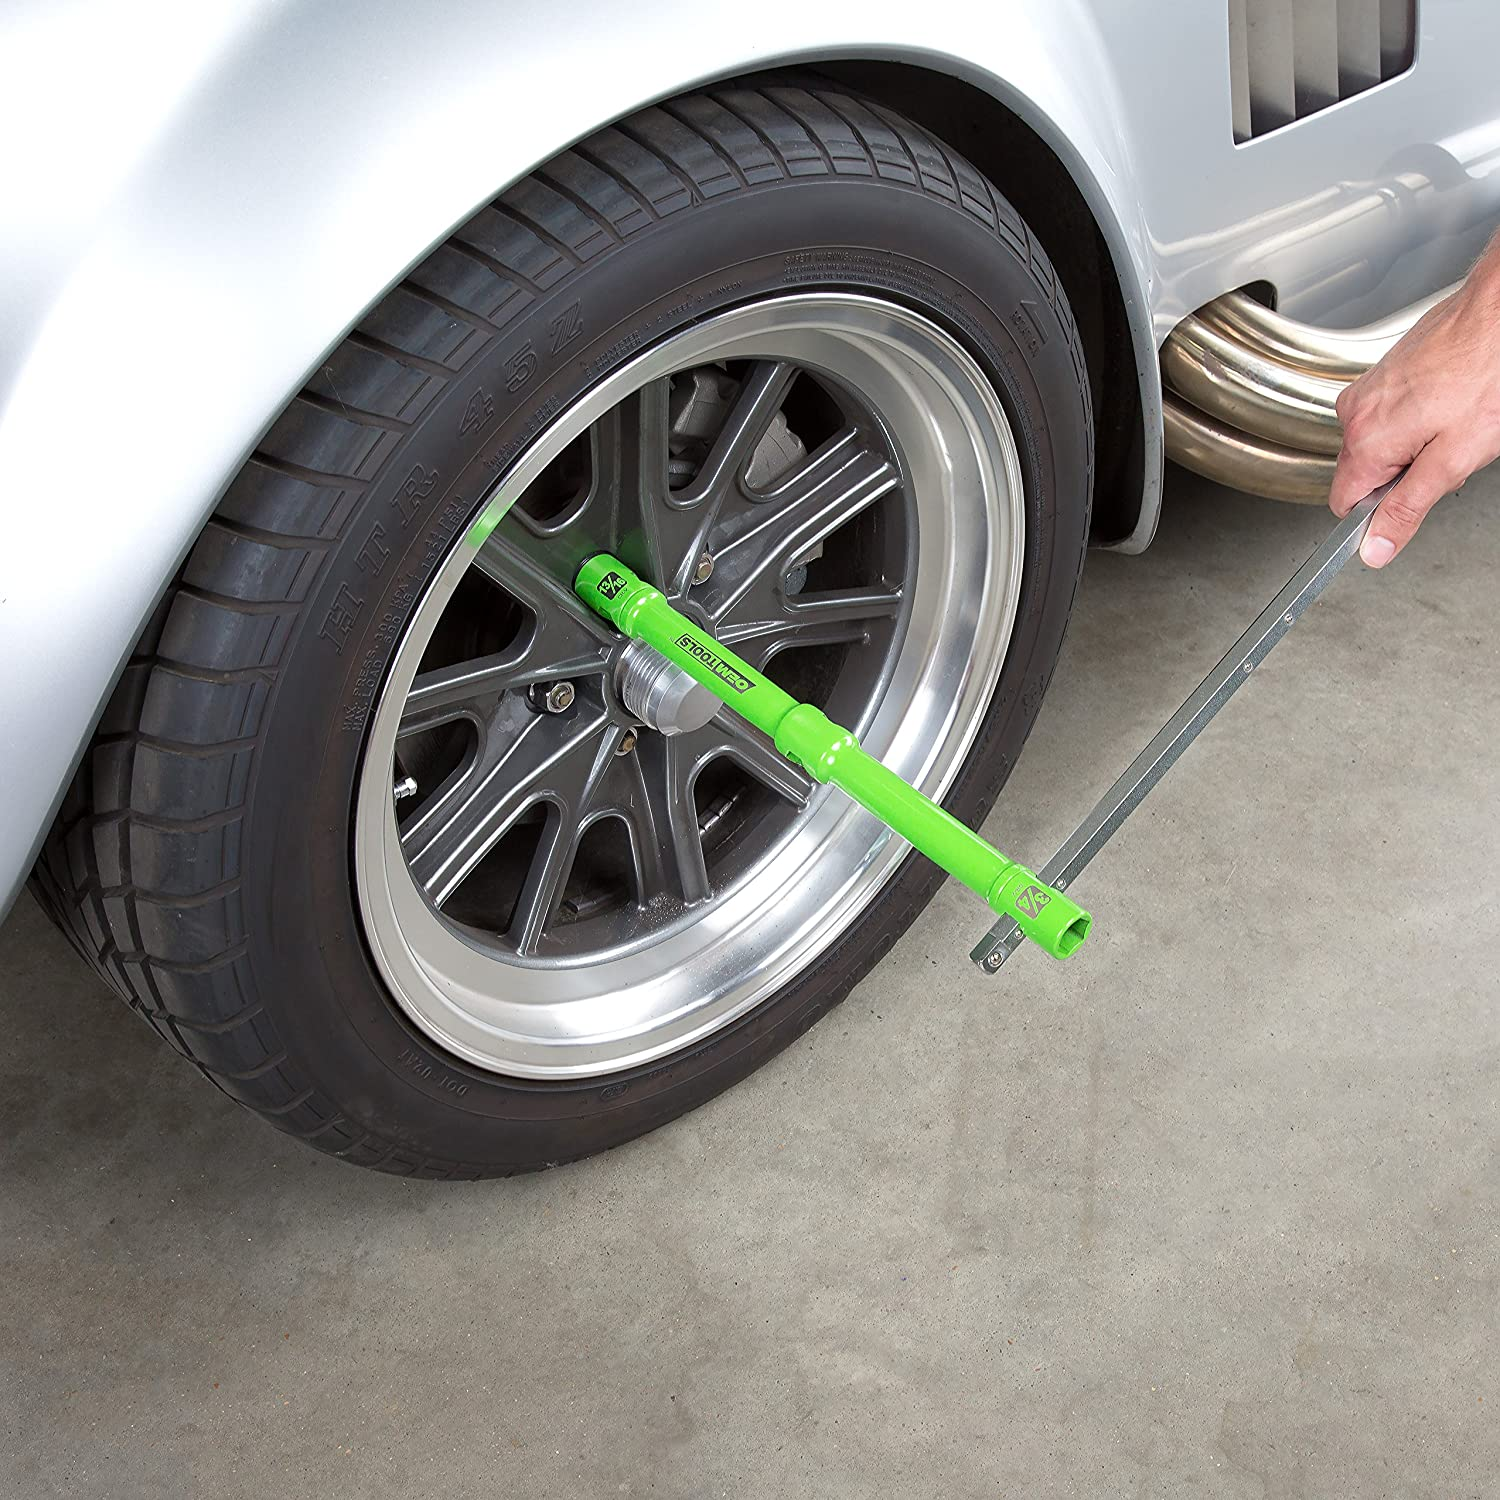 OEMTOOLS 20565 Power Cross Compact Lug Nut Wrench